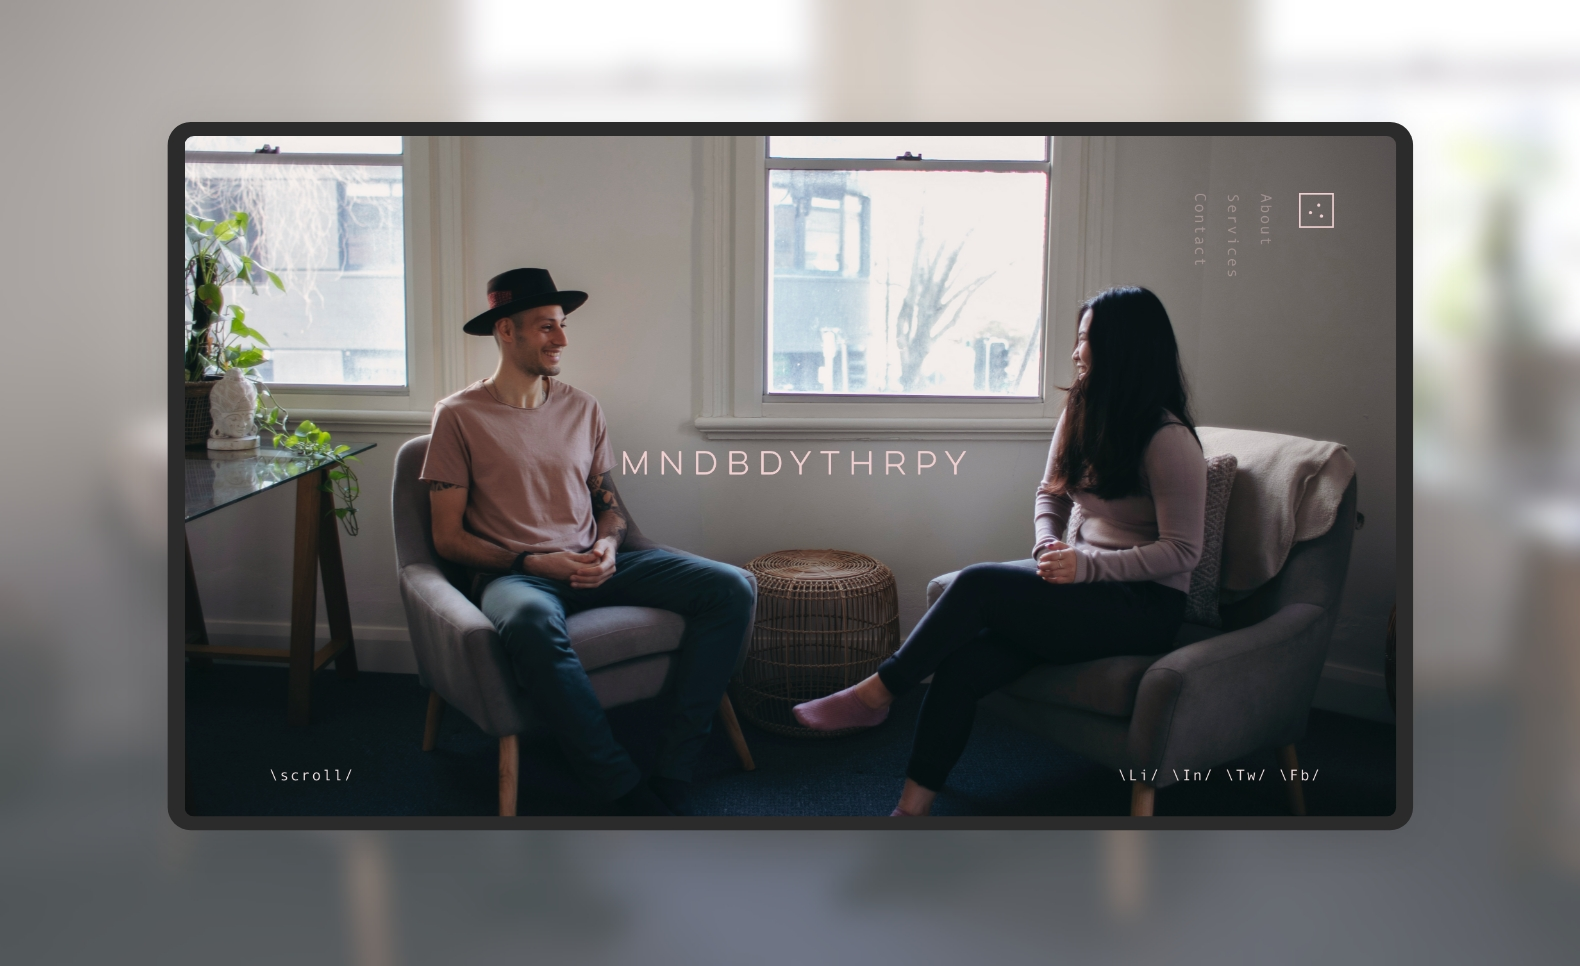 Mind Body Therapy - Visual Identity + Website